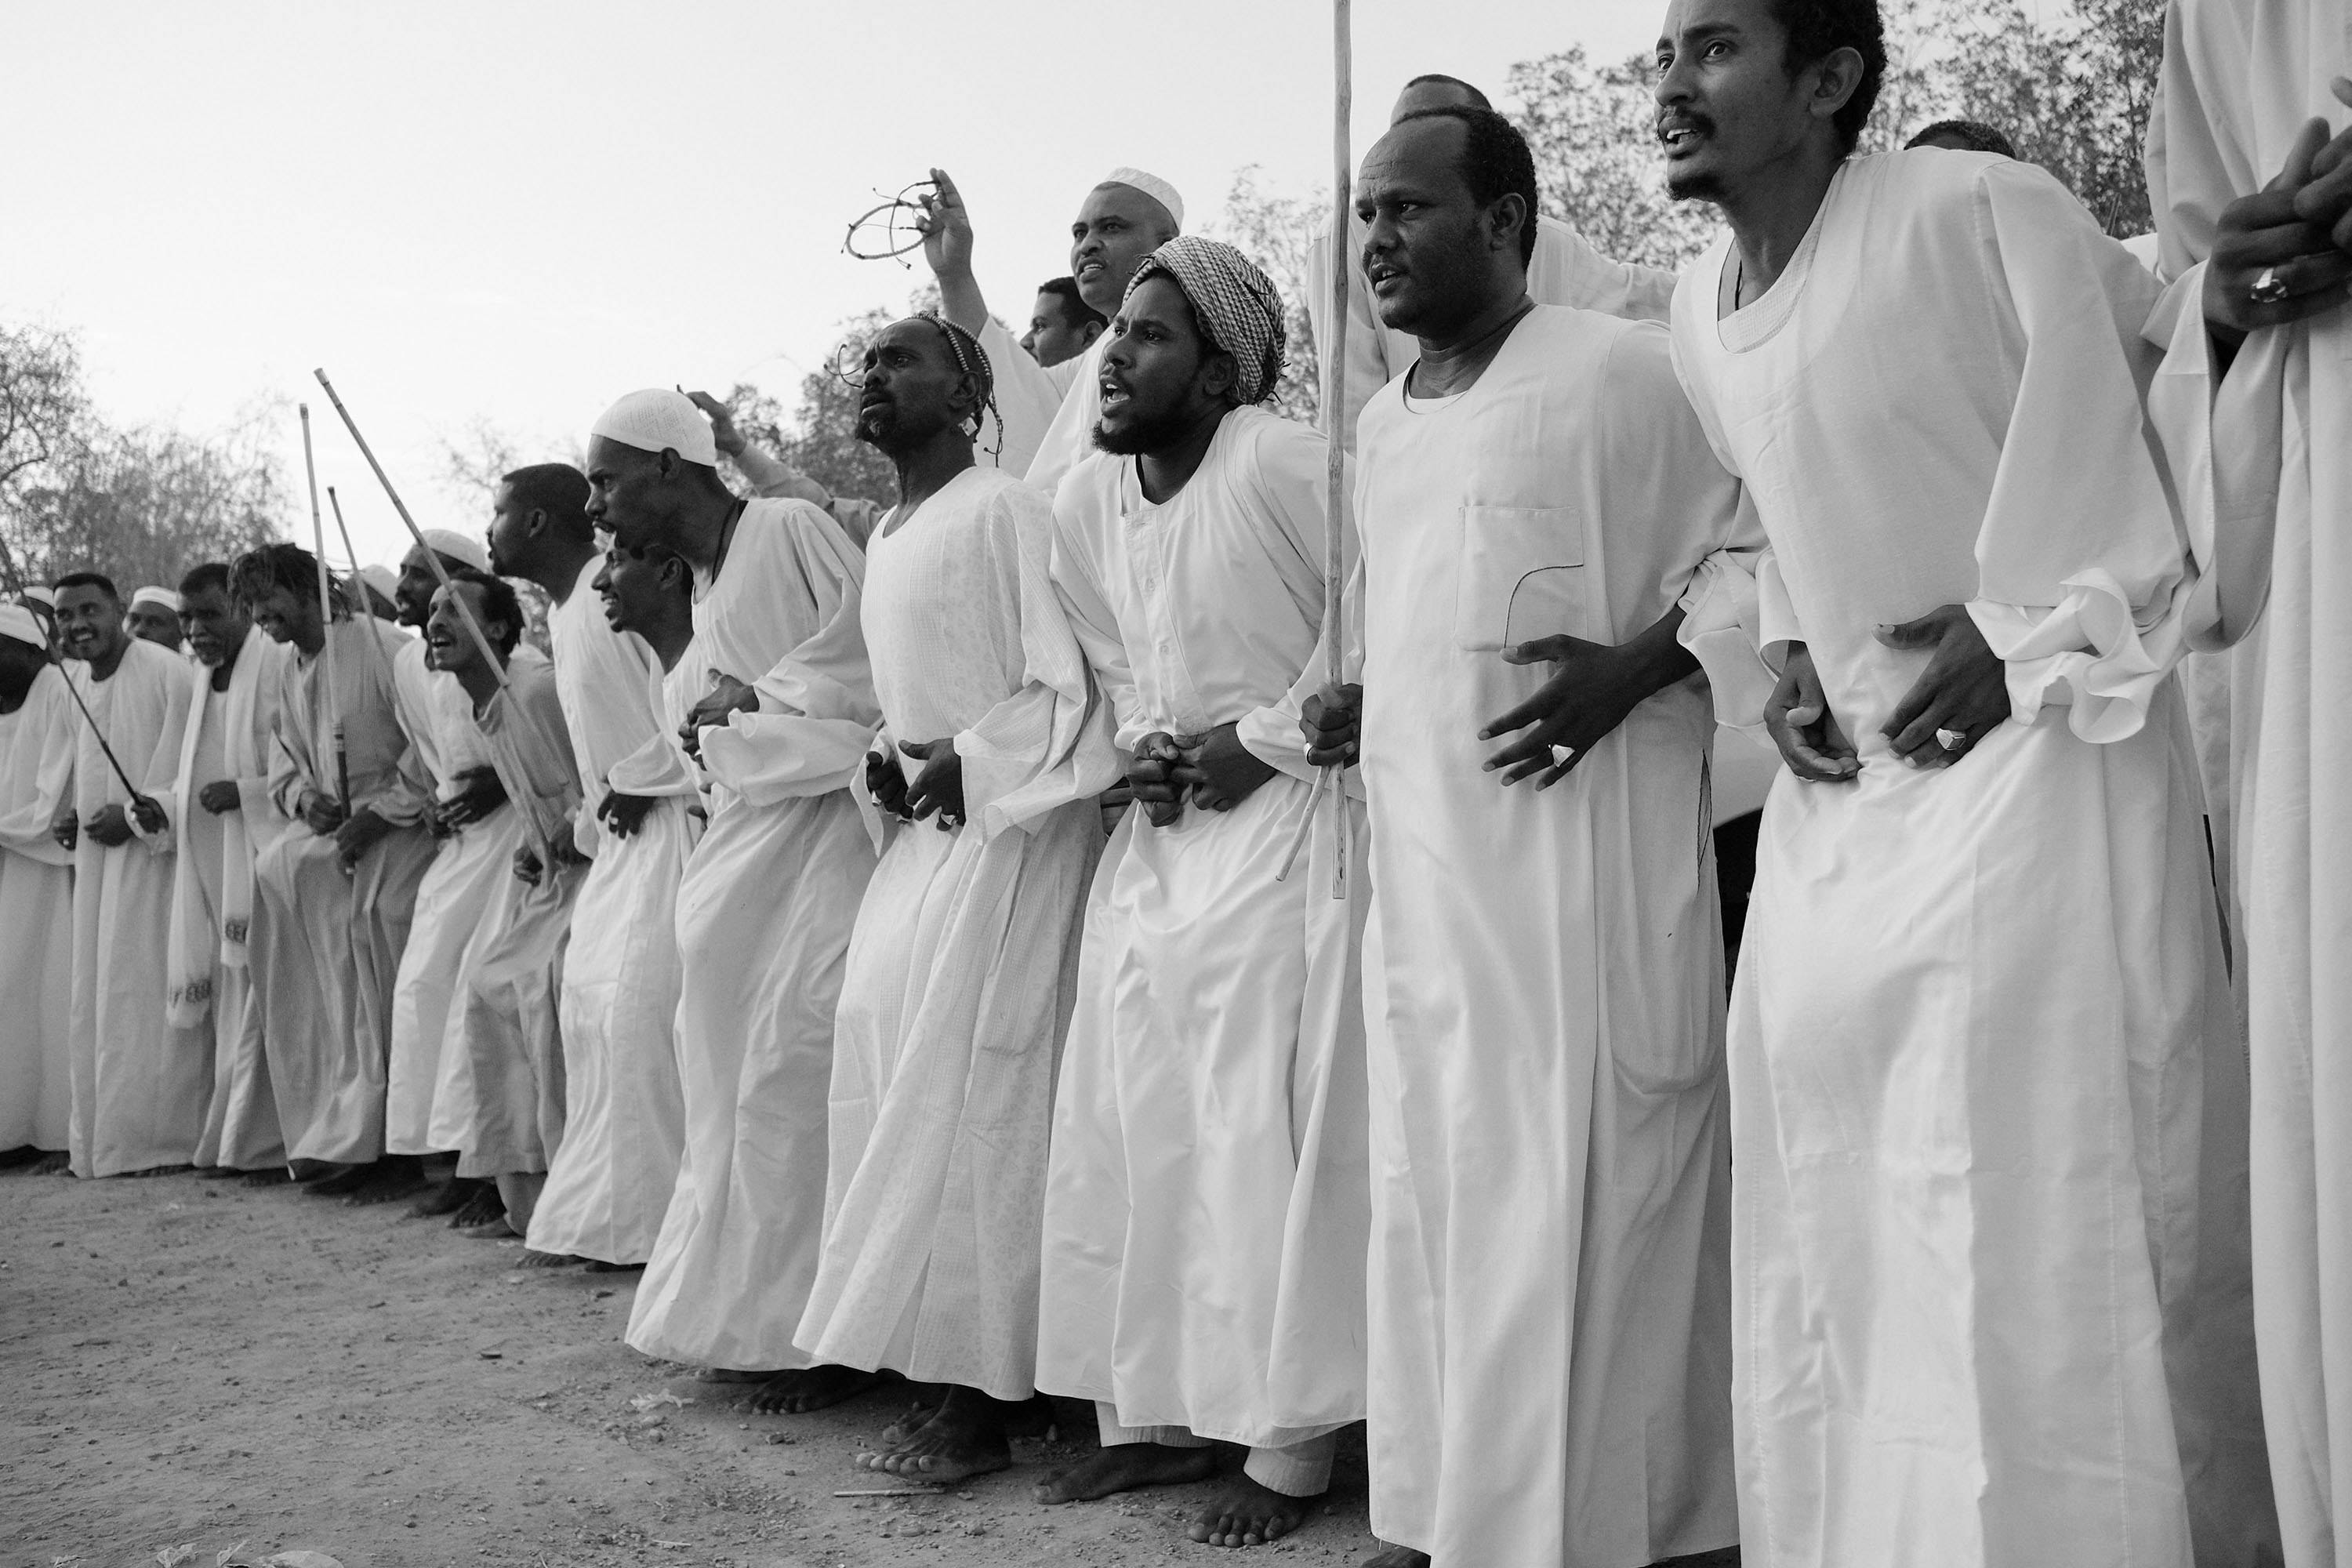 04. People perform ''Zikr'' - a religious Sufi ritual that involves dancing and chanting Omdurman. Sudan. 2017